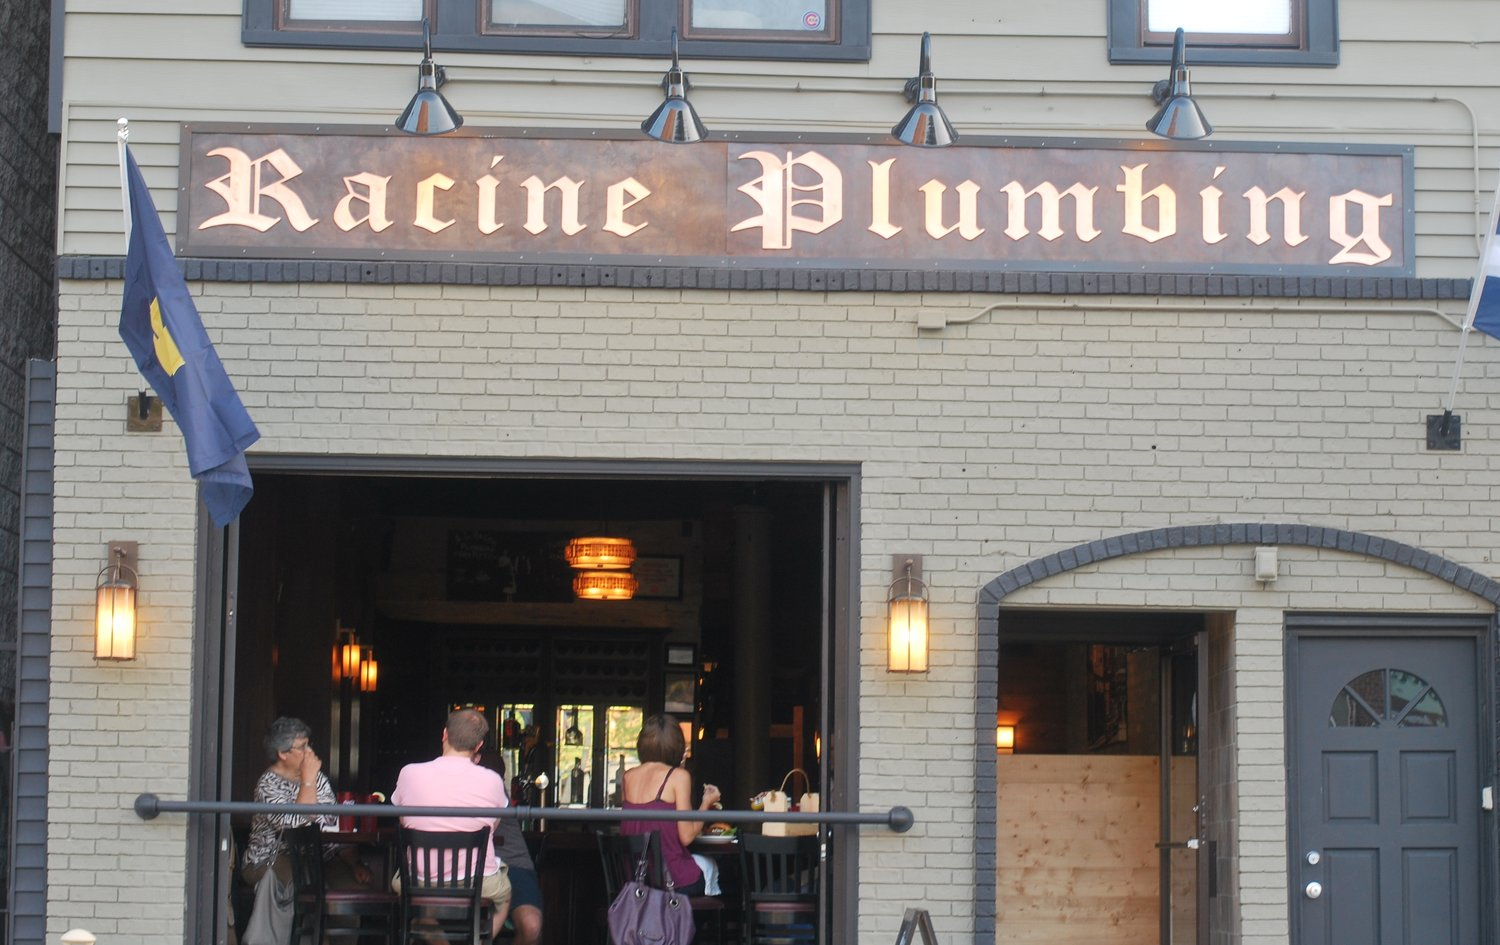 Racine Plumbing, a Popular Lincoln Park Sports Bar, is Closing